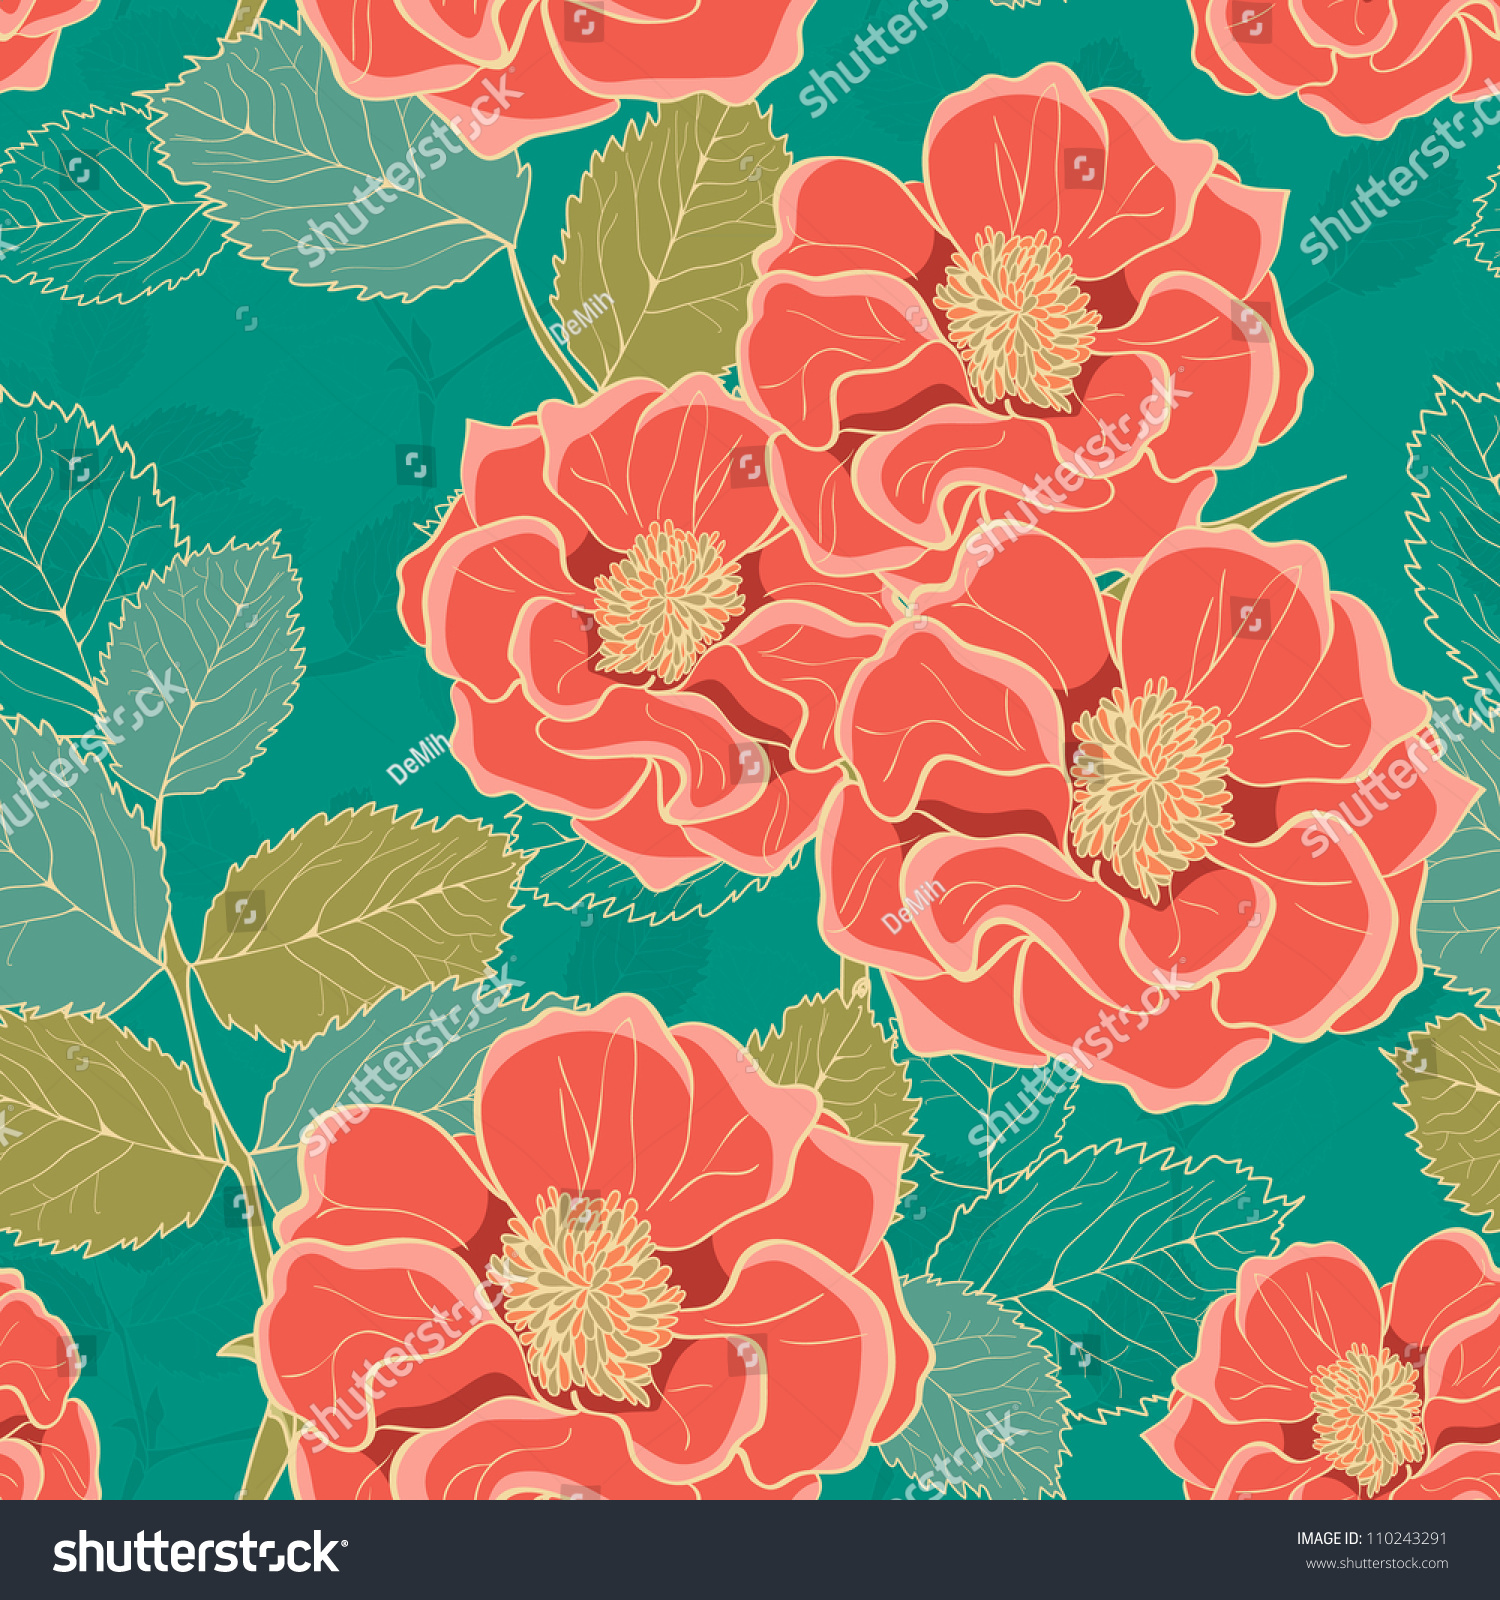 Floral Wallpaper Handdrawn Flowers Retro Colored Stock Vector ...